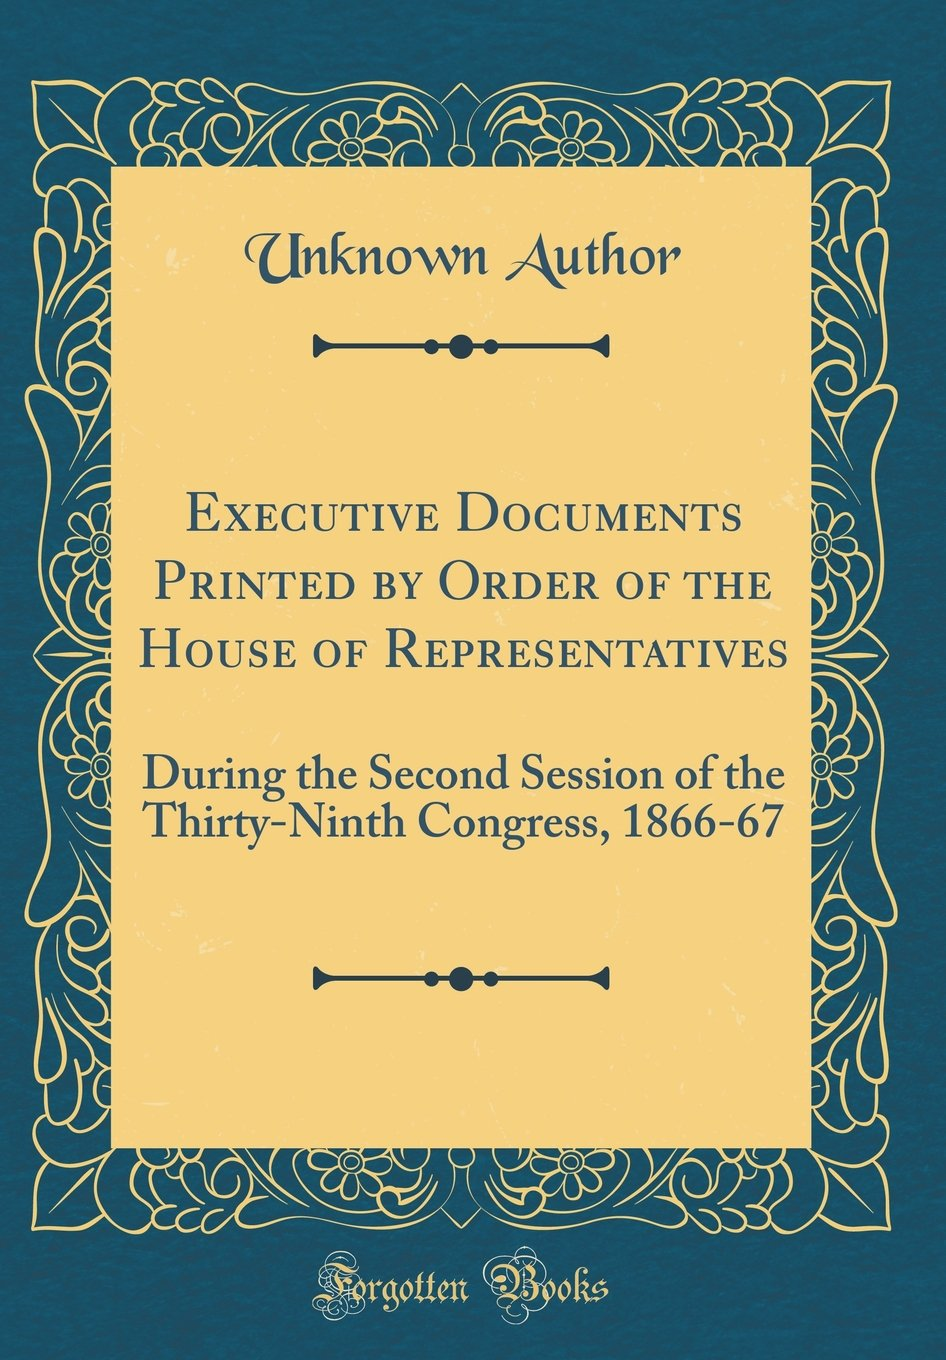 Executive Documents Printed by Order of the House of Representatives: During the Second Session of the Thirty-Ninth Congress, 1866-67 (Classic Reprint) pdf epub